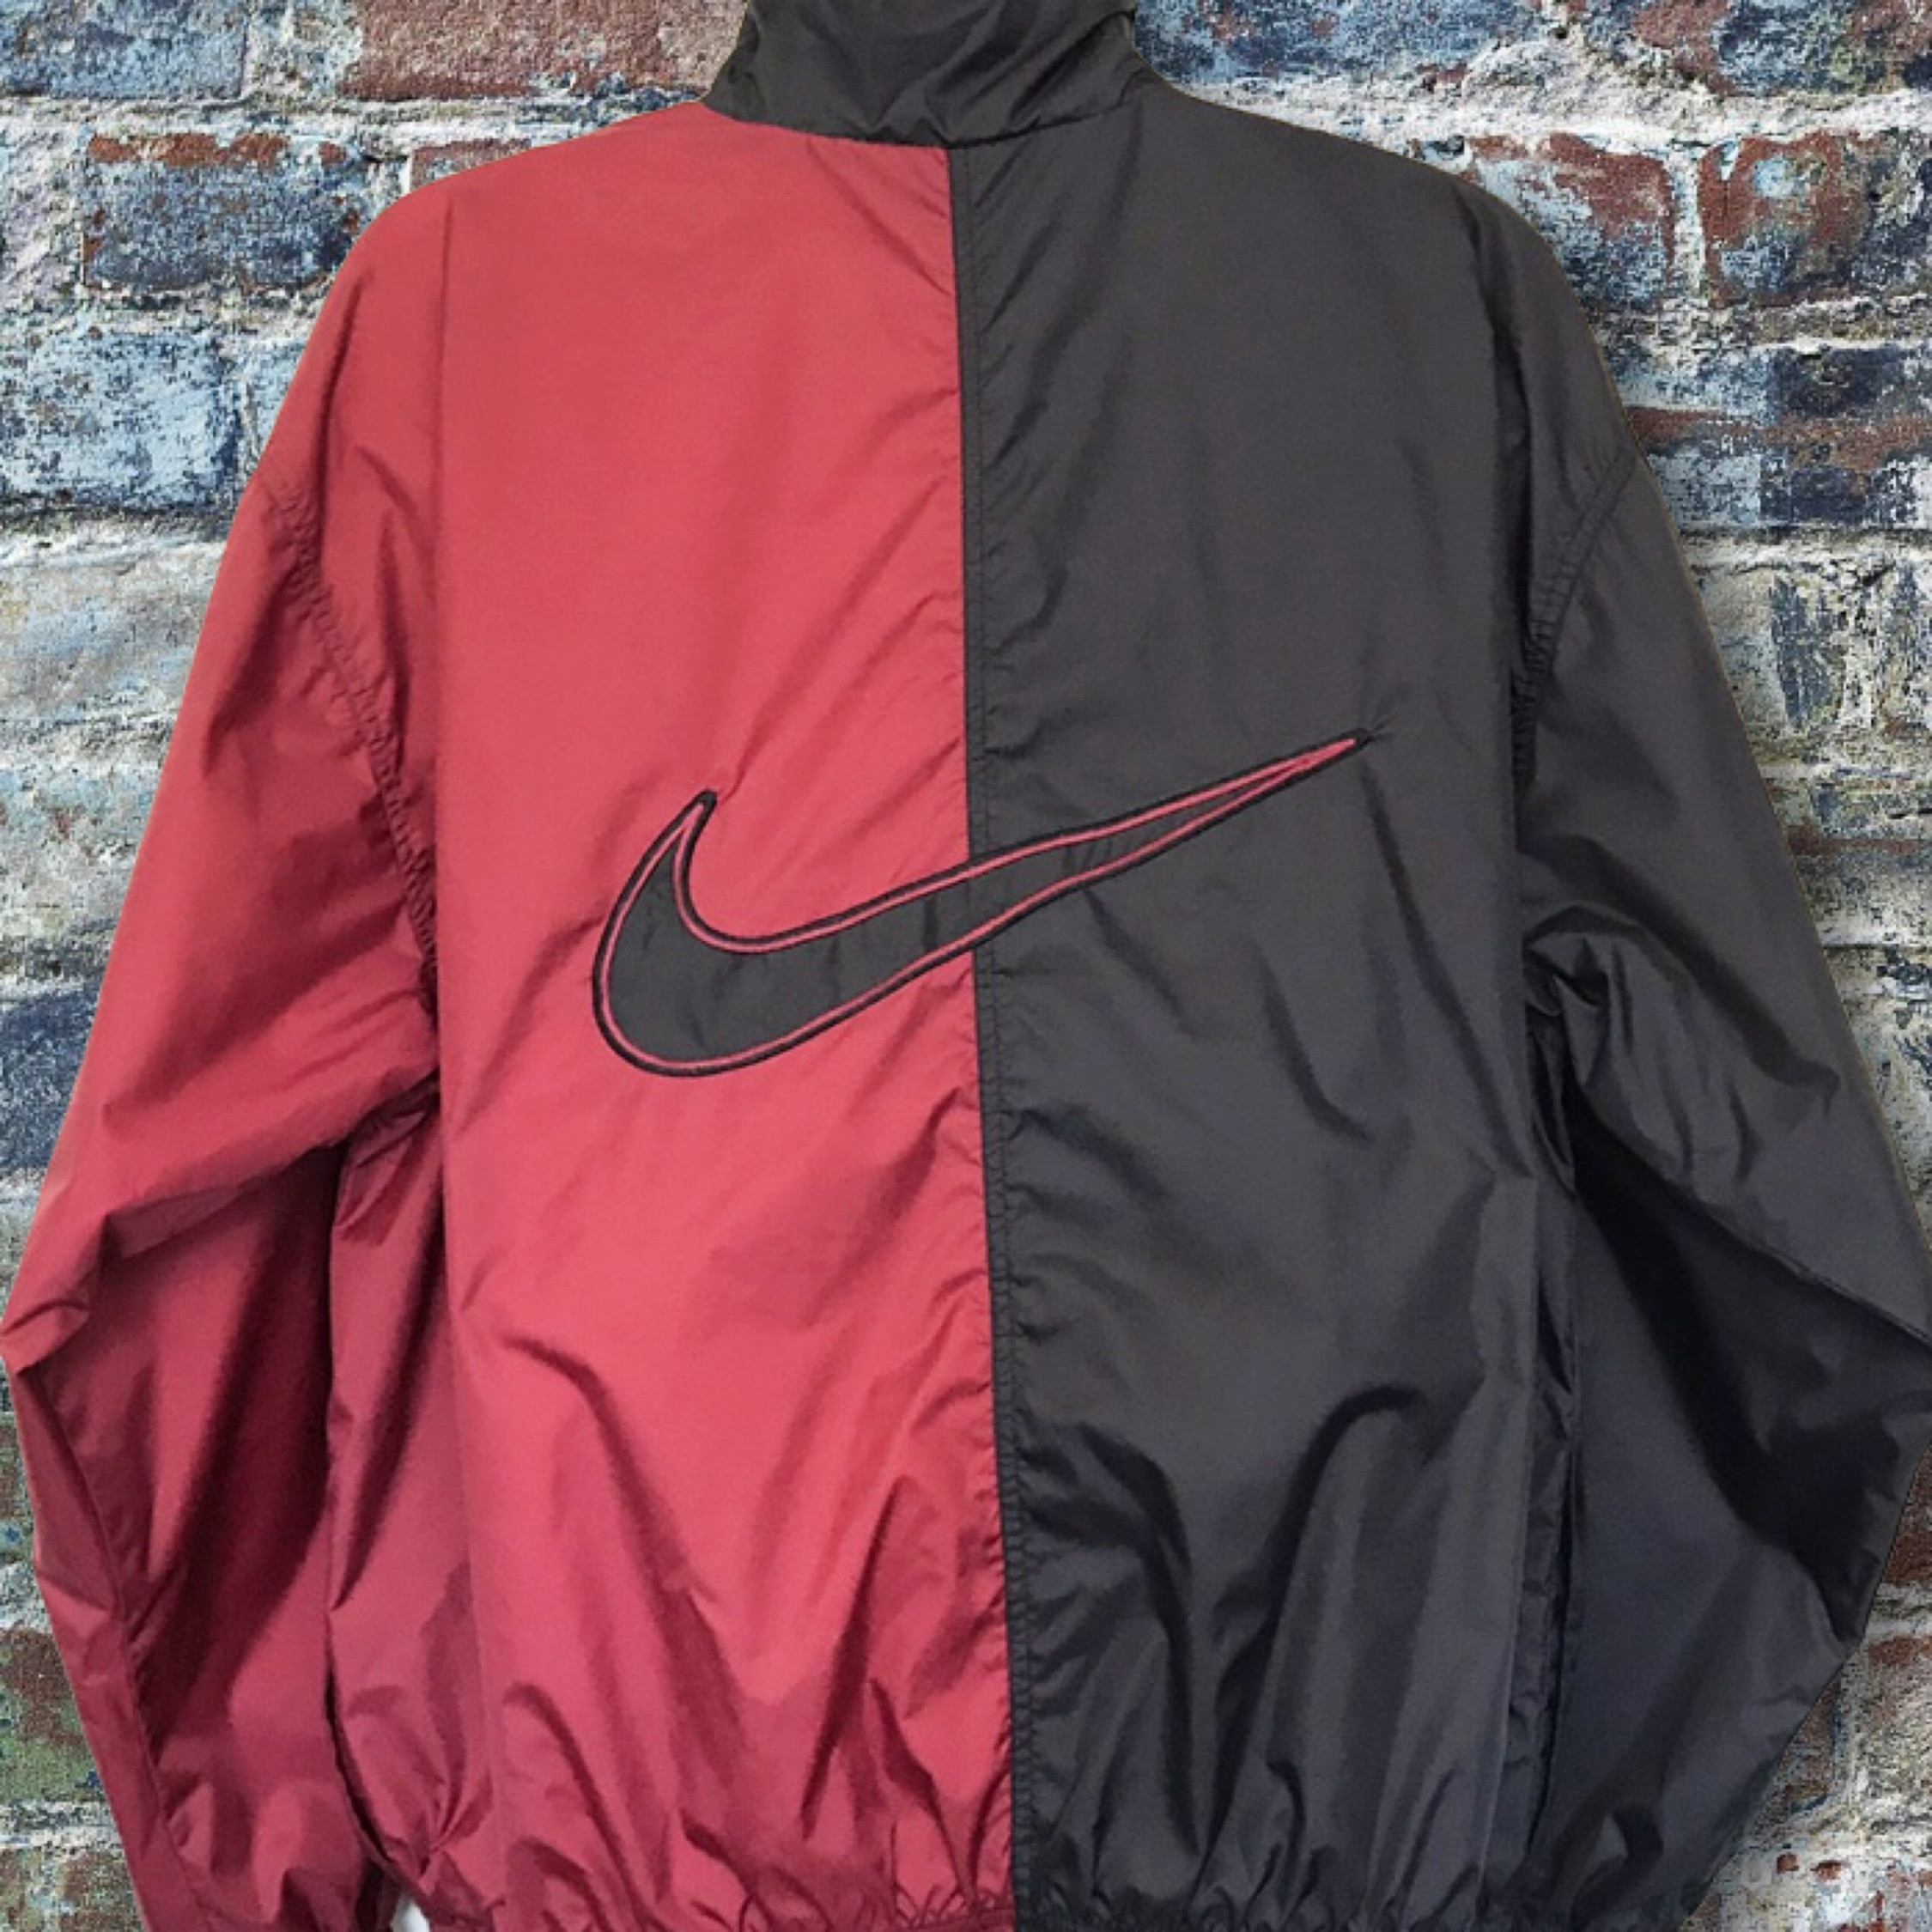 save up to 80% new york buy cheap Vintage 90S Nike Color Block Big Logo Windbreaker